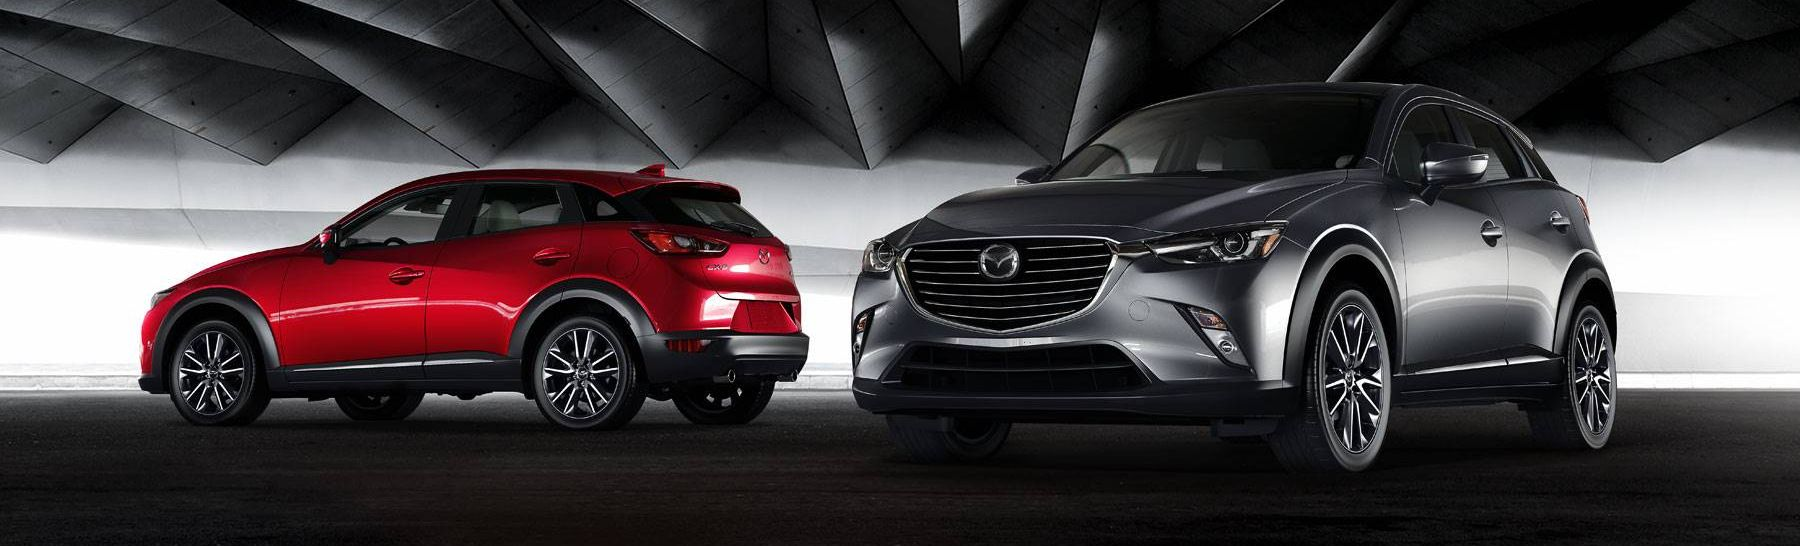 2018 Mazda CX-3 Financing near Davis, CA